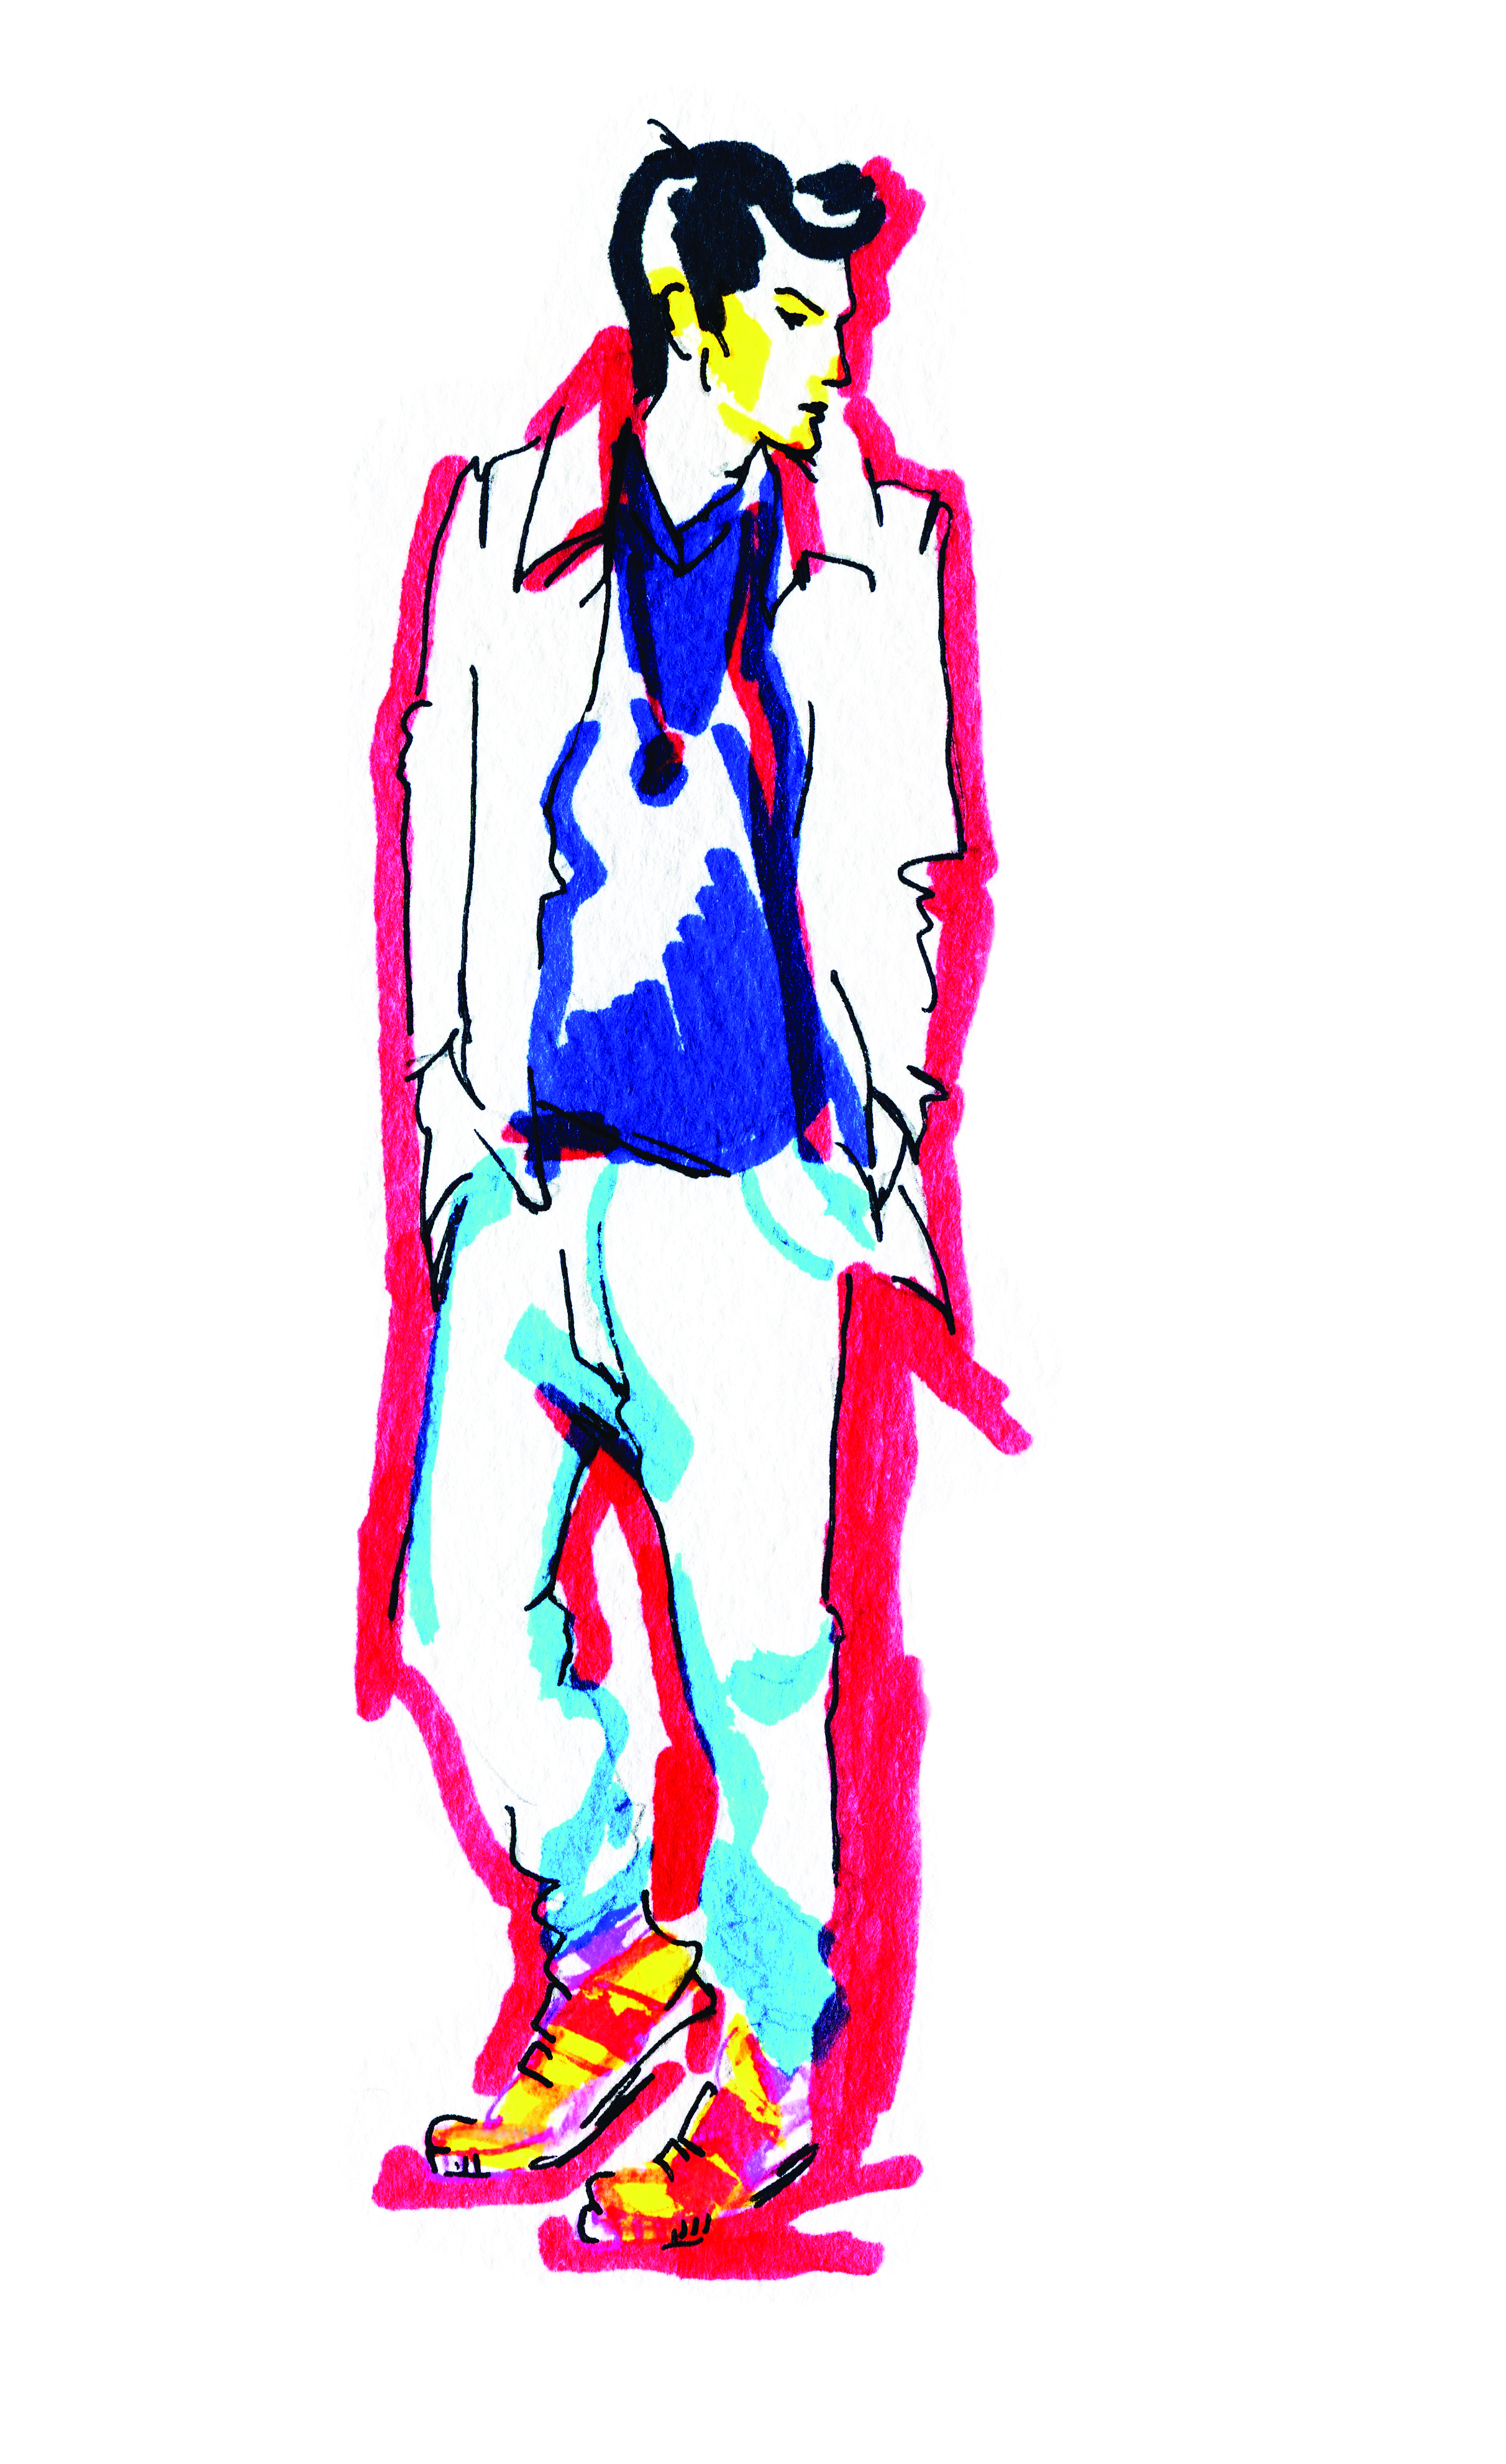 man style portrait .abstract watercolor .fashion background